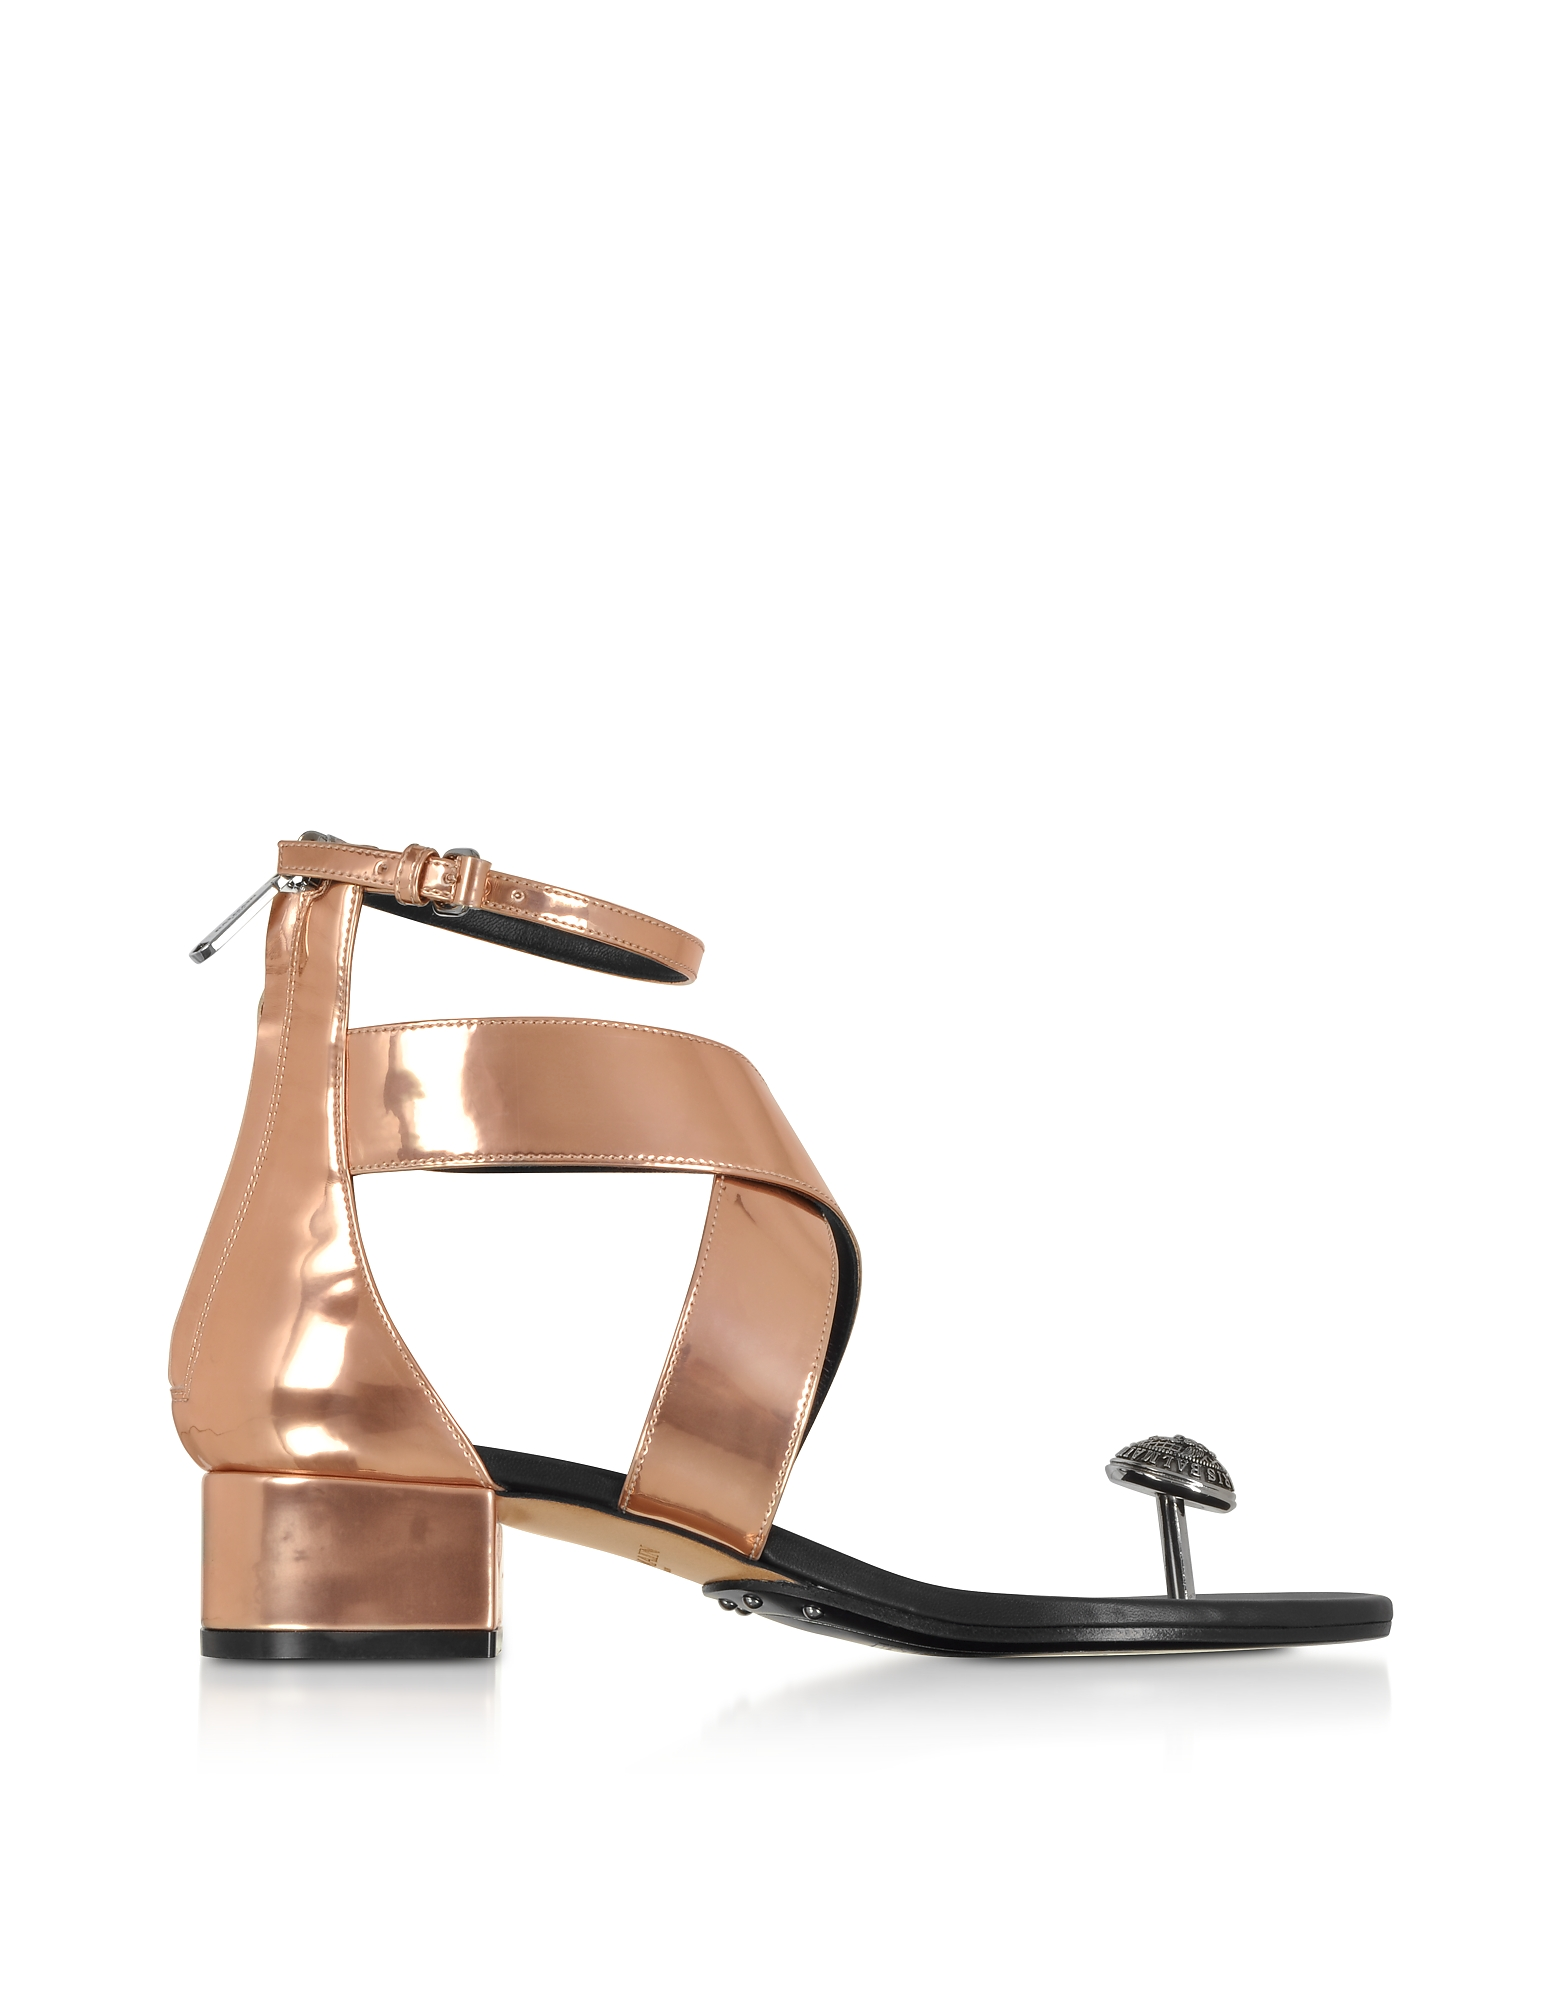 Balmain Designer Shoes, Rose Gold Laminated Leather Juliet Flat Sandals